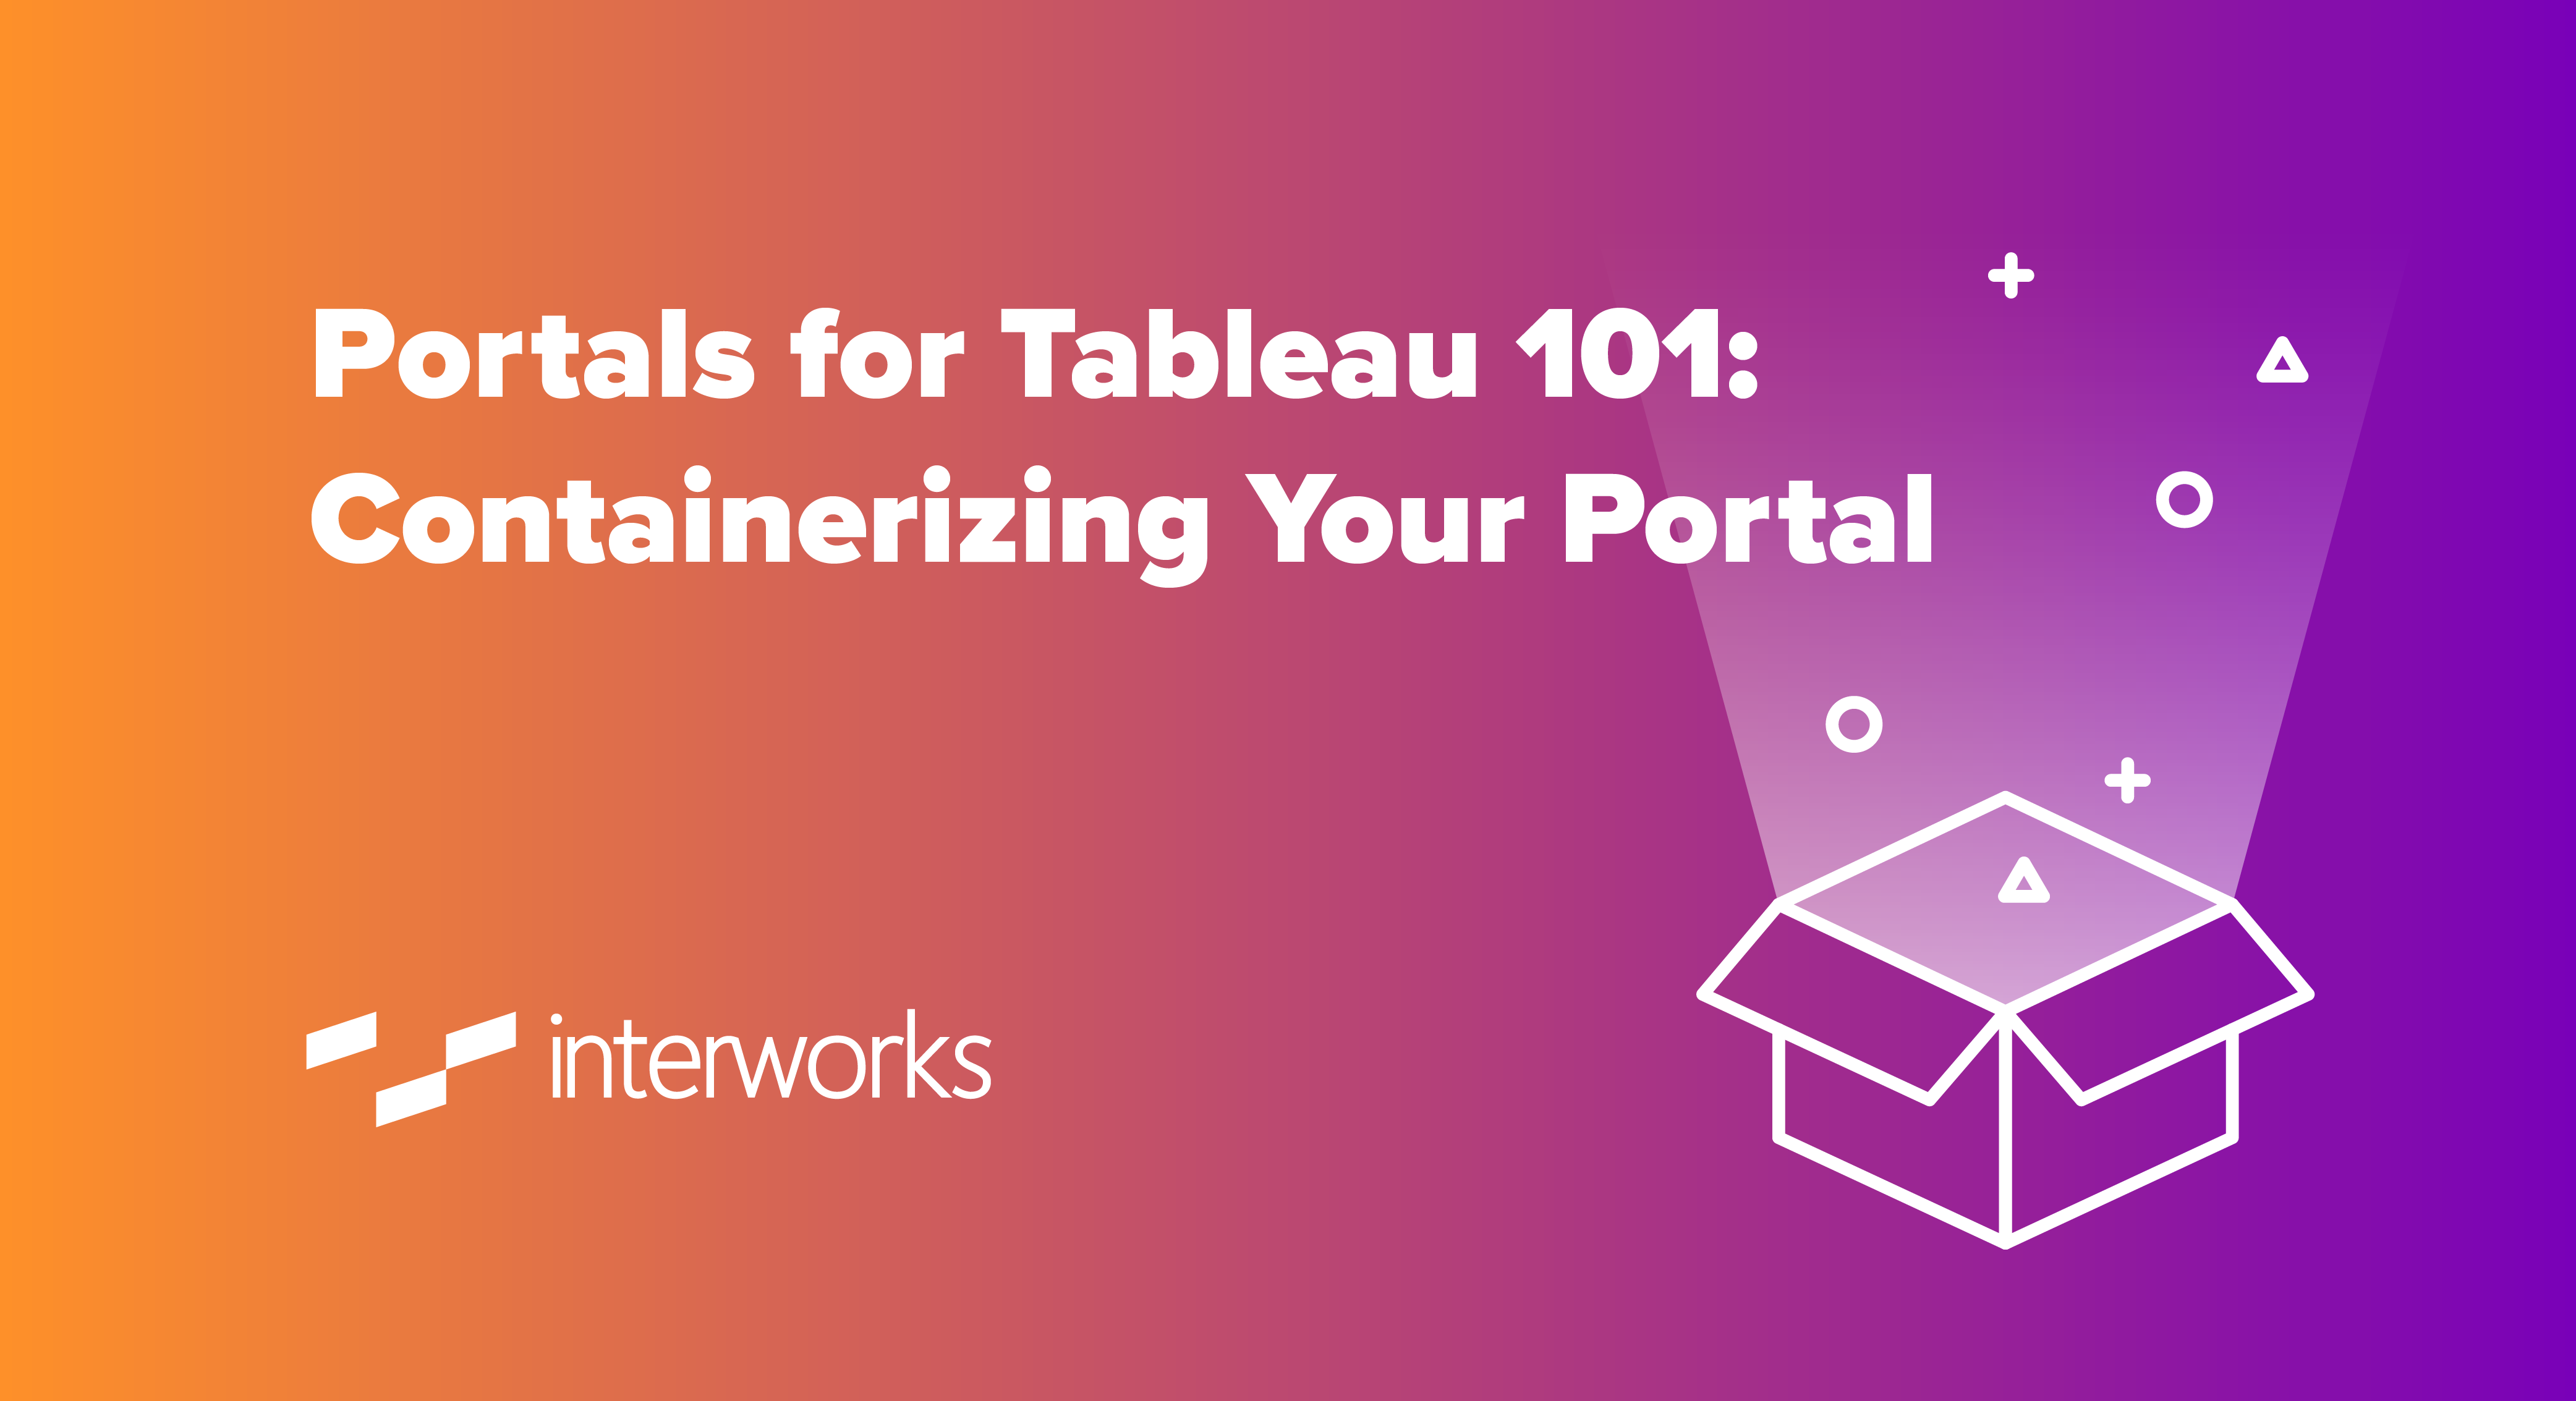 Portals for Tableau 101: Containerizing Your Portal